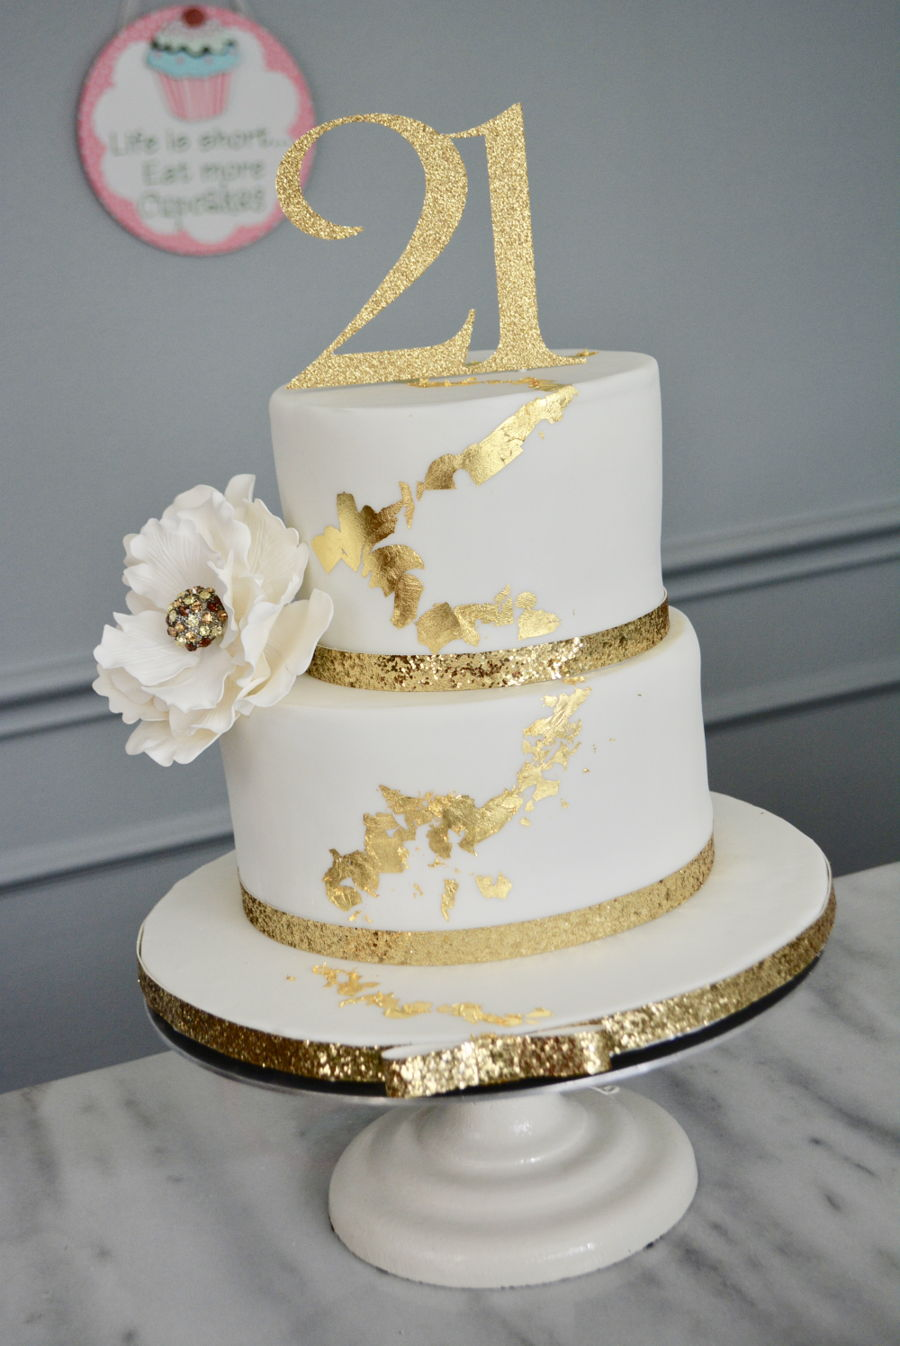 Cake Decorating Gold Leaf : Gold Leaf Cake - CakeCentral.com